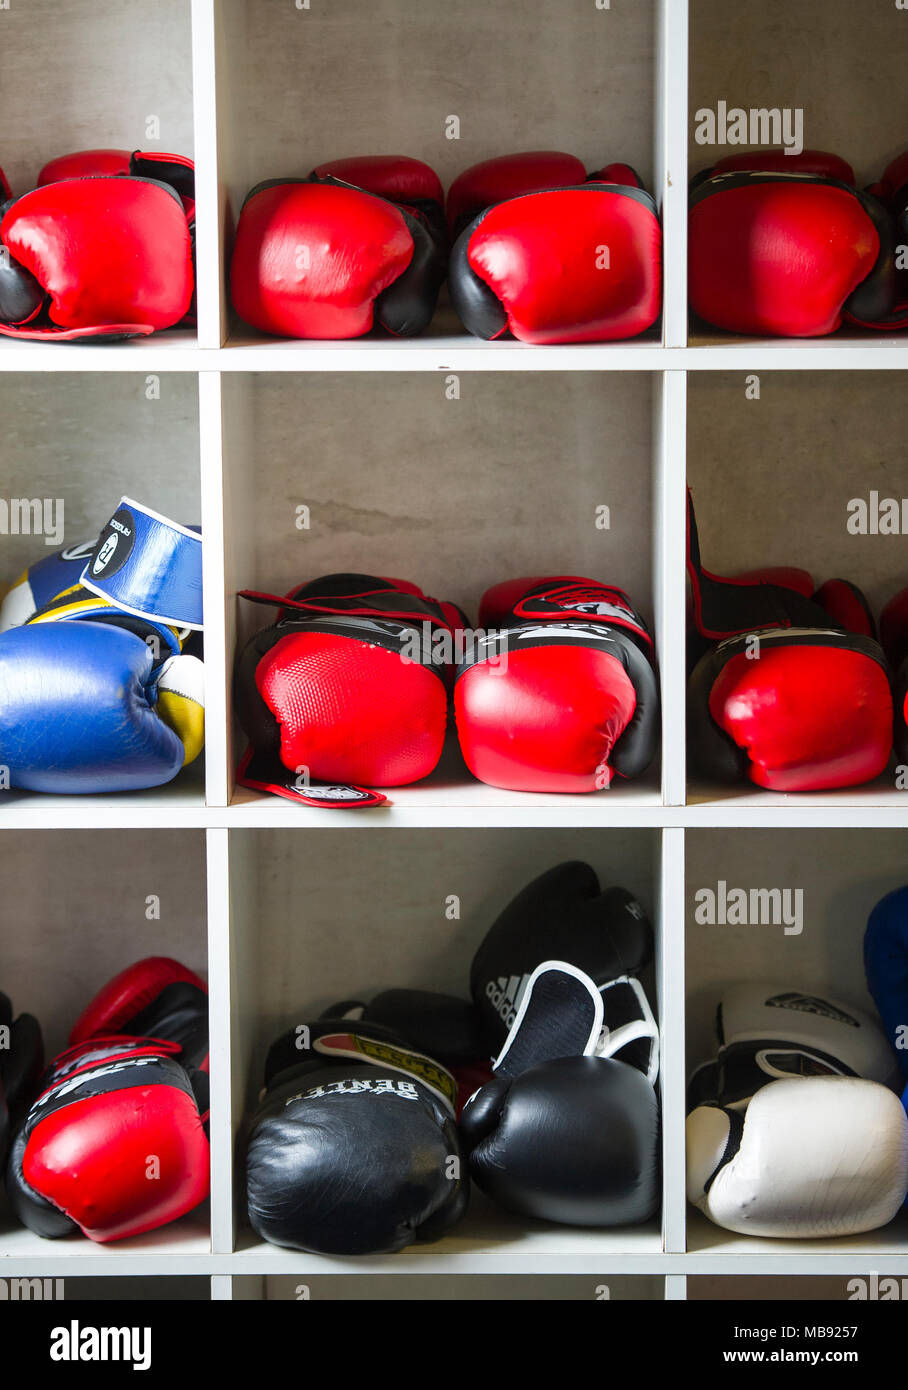 Various colourful boxing gloves stored on shelves in a boxing gymnasium - Stock Image